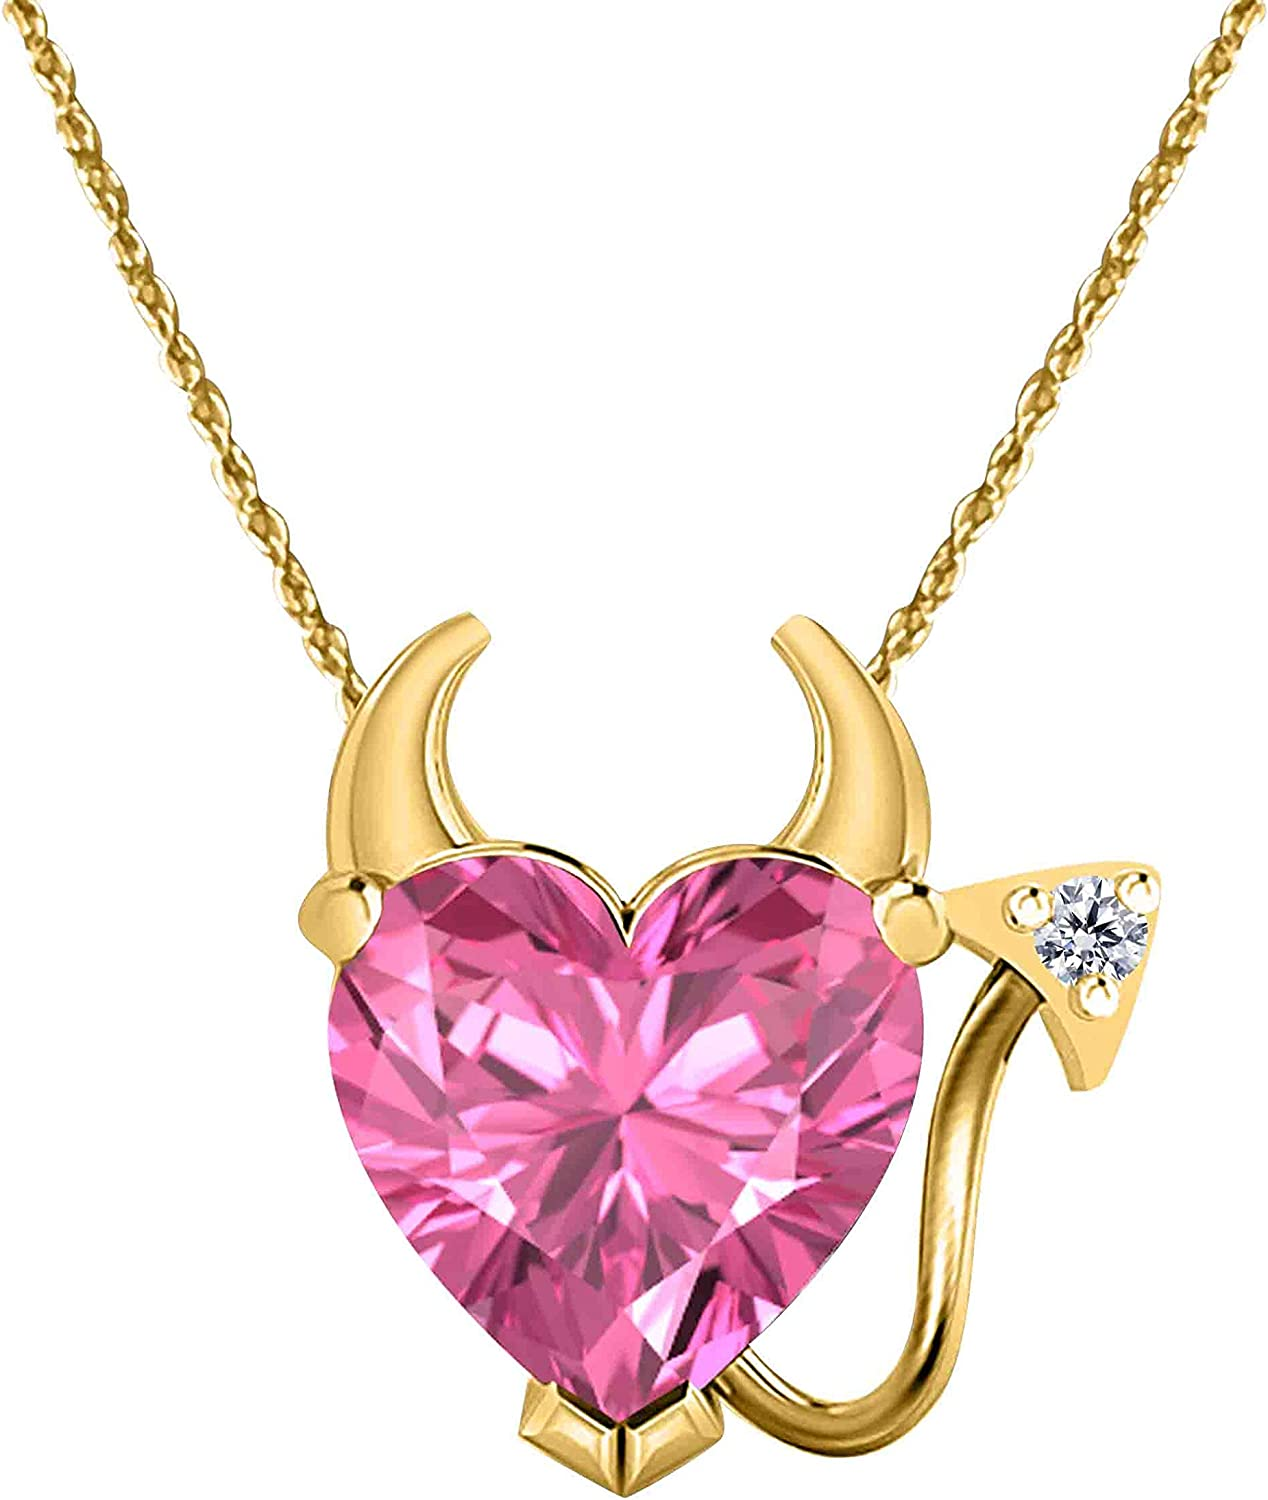 Gothic Vampire Bat Necklace .925 Sterling Silver 14k Yellow Gold Plated CZ Pink Sapphire Pendant Necklace Fashion Jewelry for Women Best Gift for Wife Girlfriend at Christmas Birthday